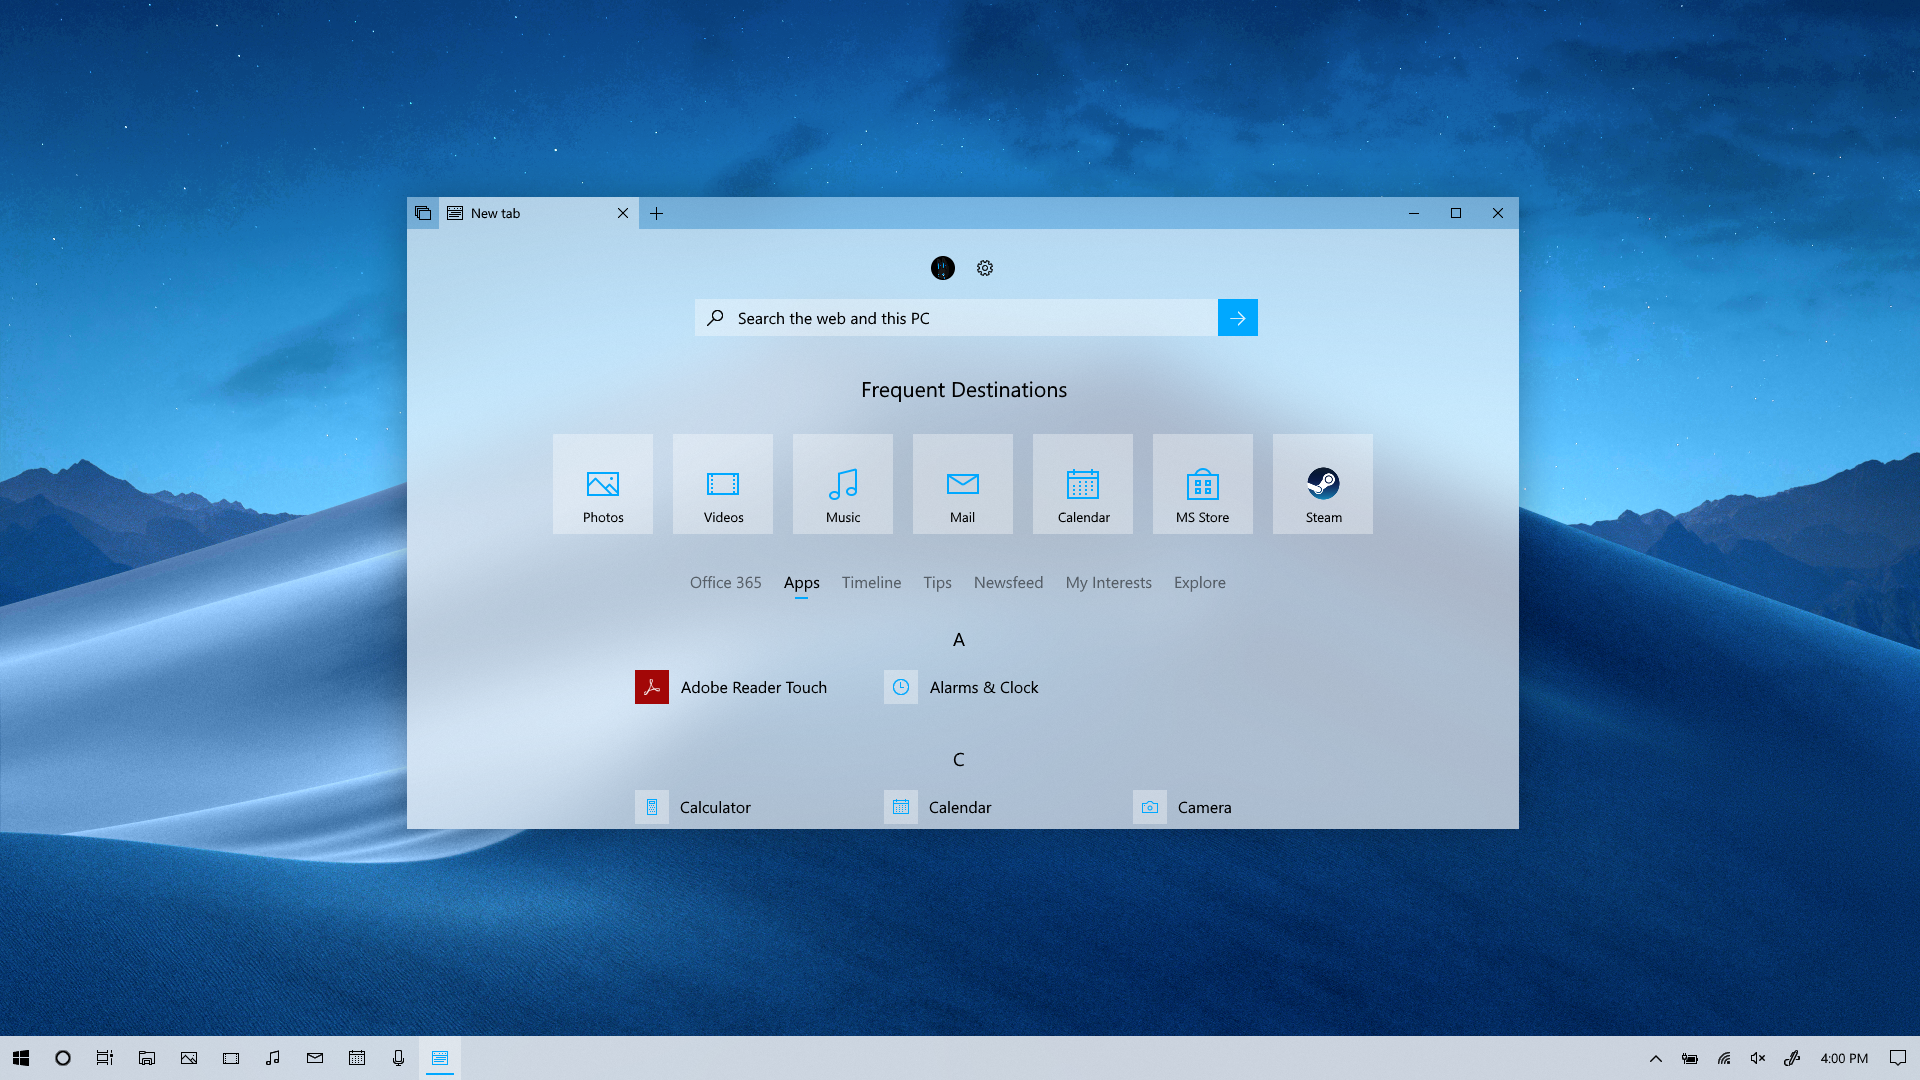 Fluent Design Concept - New Tab Sets and Edge (Lig by